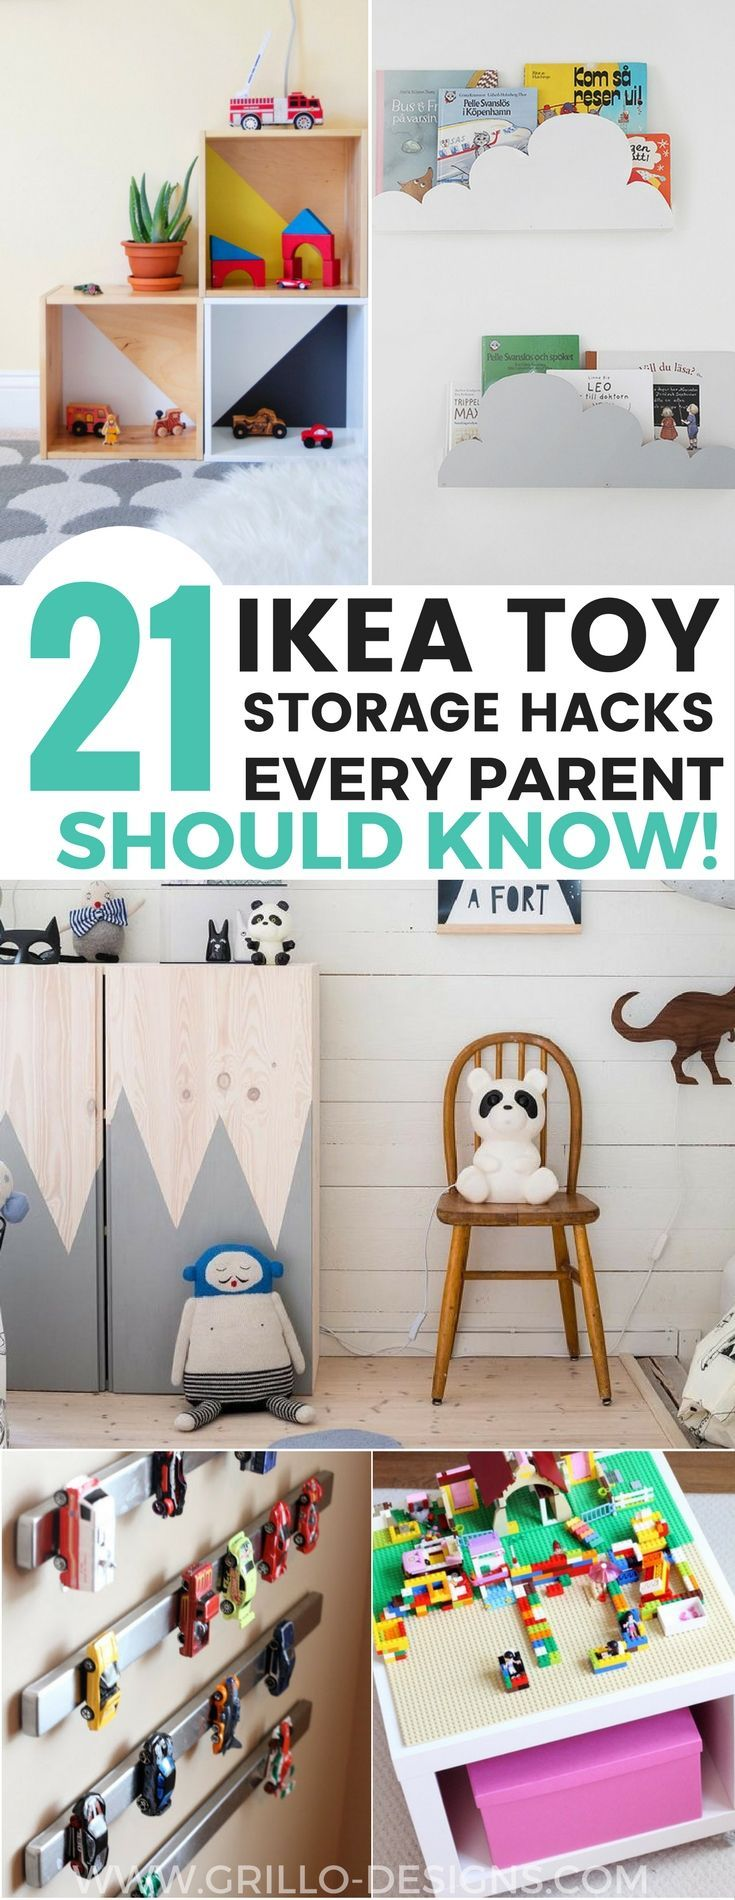 21 Ikea Toy Storage Hacks Every Parent Should Know Ikea Toy  # Muebles Jugueteros Ikea